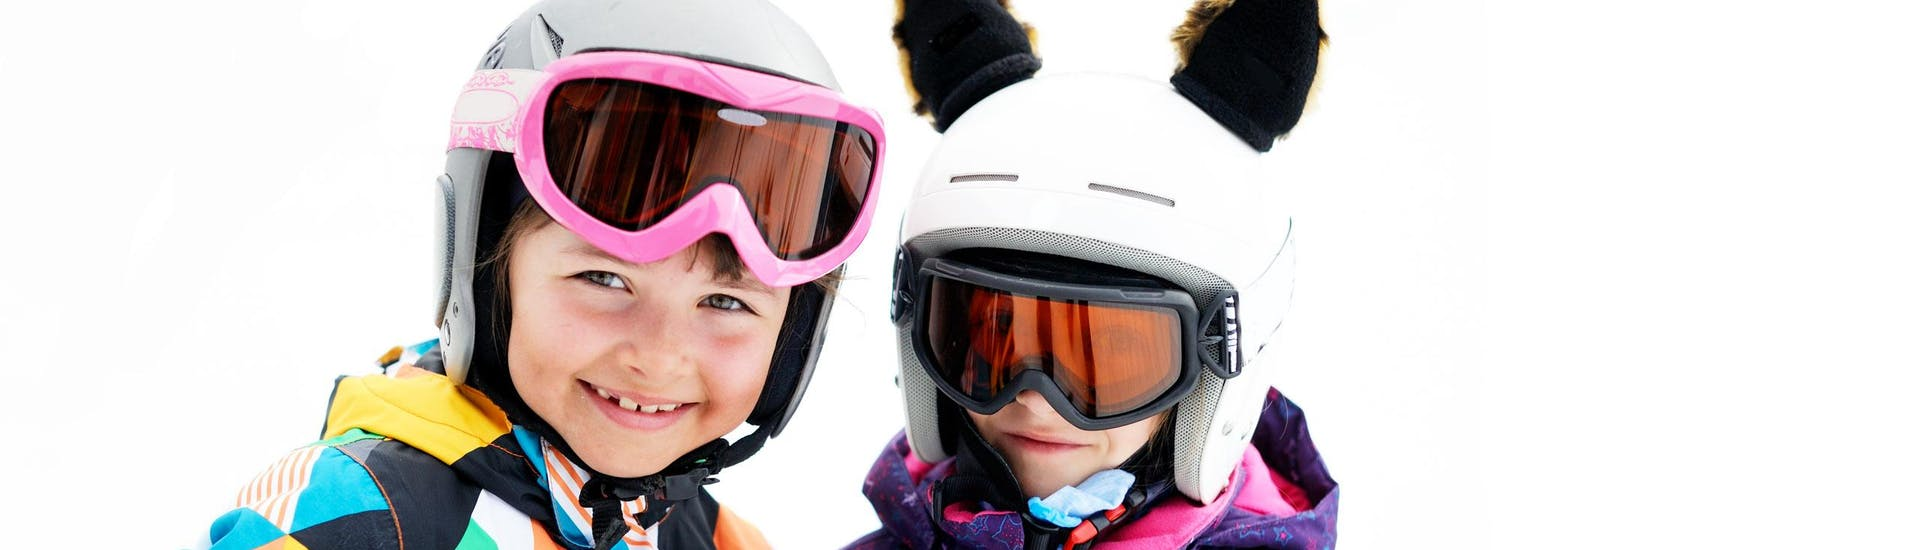 Two young children smiling at the camera during one of the Ski Lessons for Kids (4 -14 years) - Beginner organised by fun  & pro Ski- and Snowboardschool.